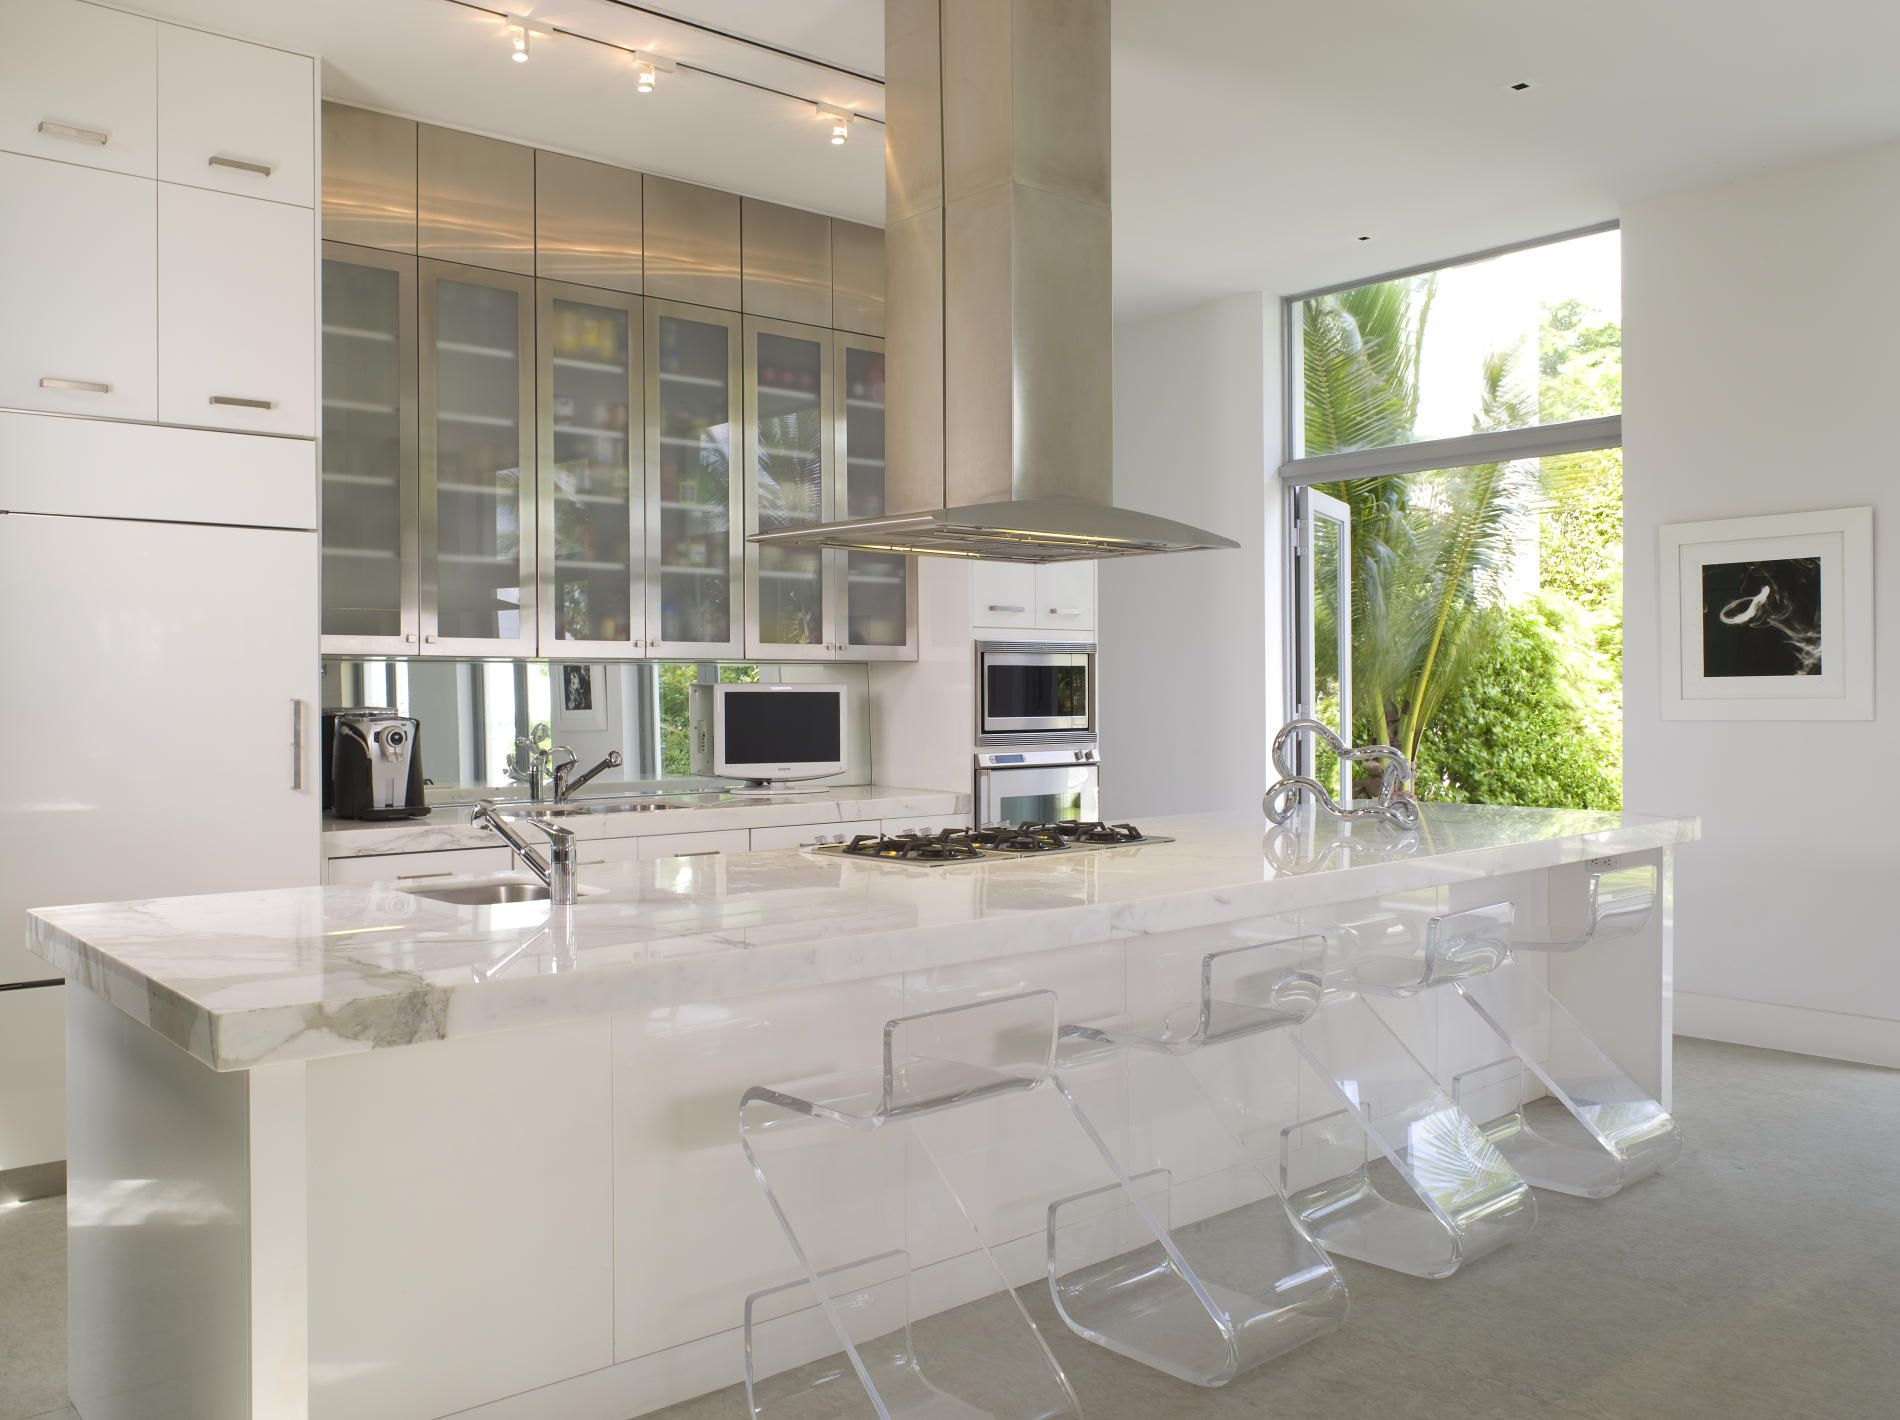 Awesome White Swedish Kitchen Design Ideas With Modern Island Ideas With Clear Glass Seat Scandinavian Kitchen Design White Modern Kitchen Contemporary Kitchen